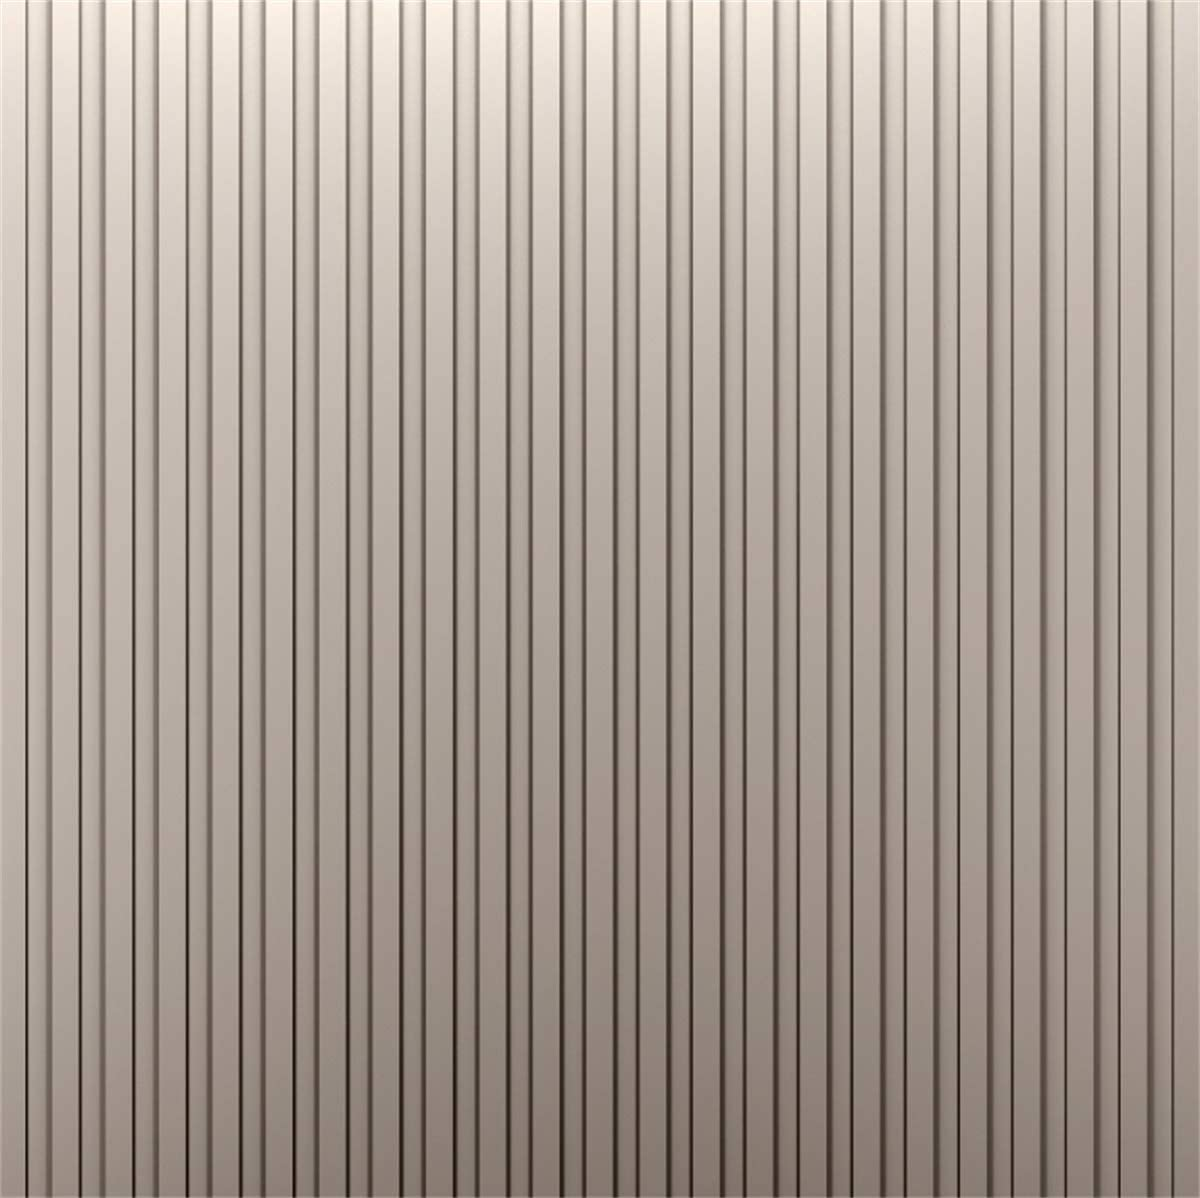 YEELE Gray and Yellow Striped Backdrop 10x10ft Kids Birthday Party Photography Background Seamless Pattern Pictures Baby Shower Decoration Kids Adults Portrait Photoshoot Studio Props Wallpaper